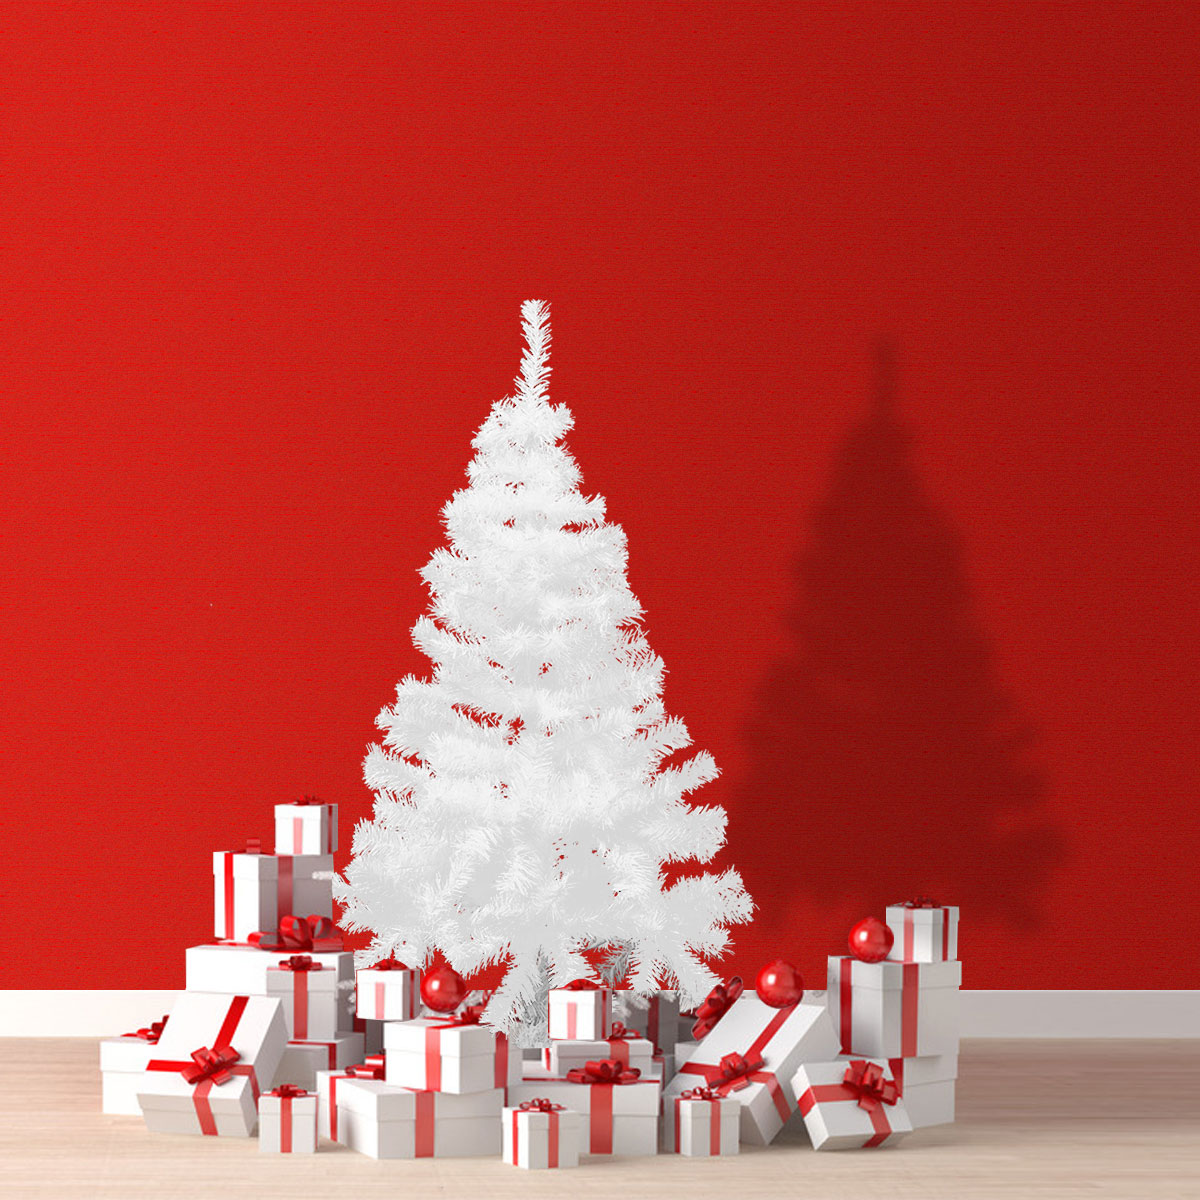 4Ft White Christmas Tree Artificial Unlit Premium Spruce Hinged Tree with Stand Holiday Festival Decor Indoor & Outdoor